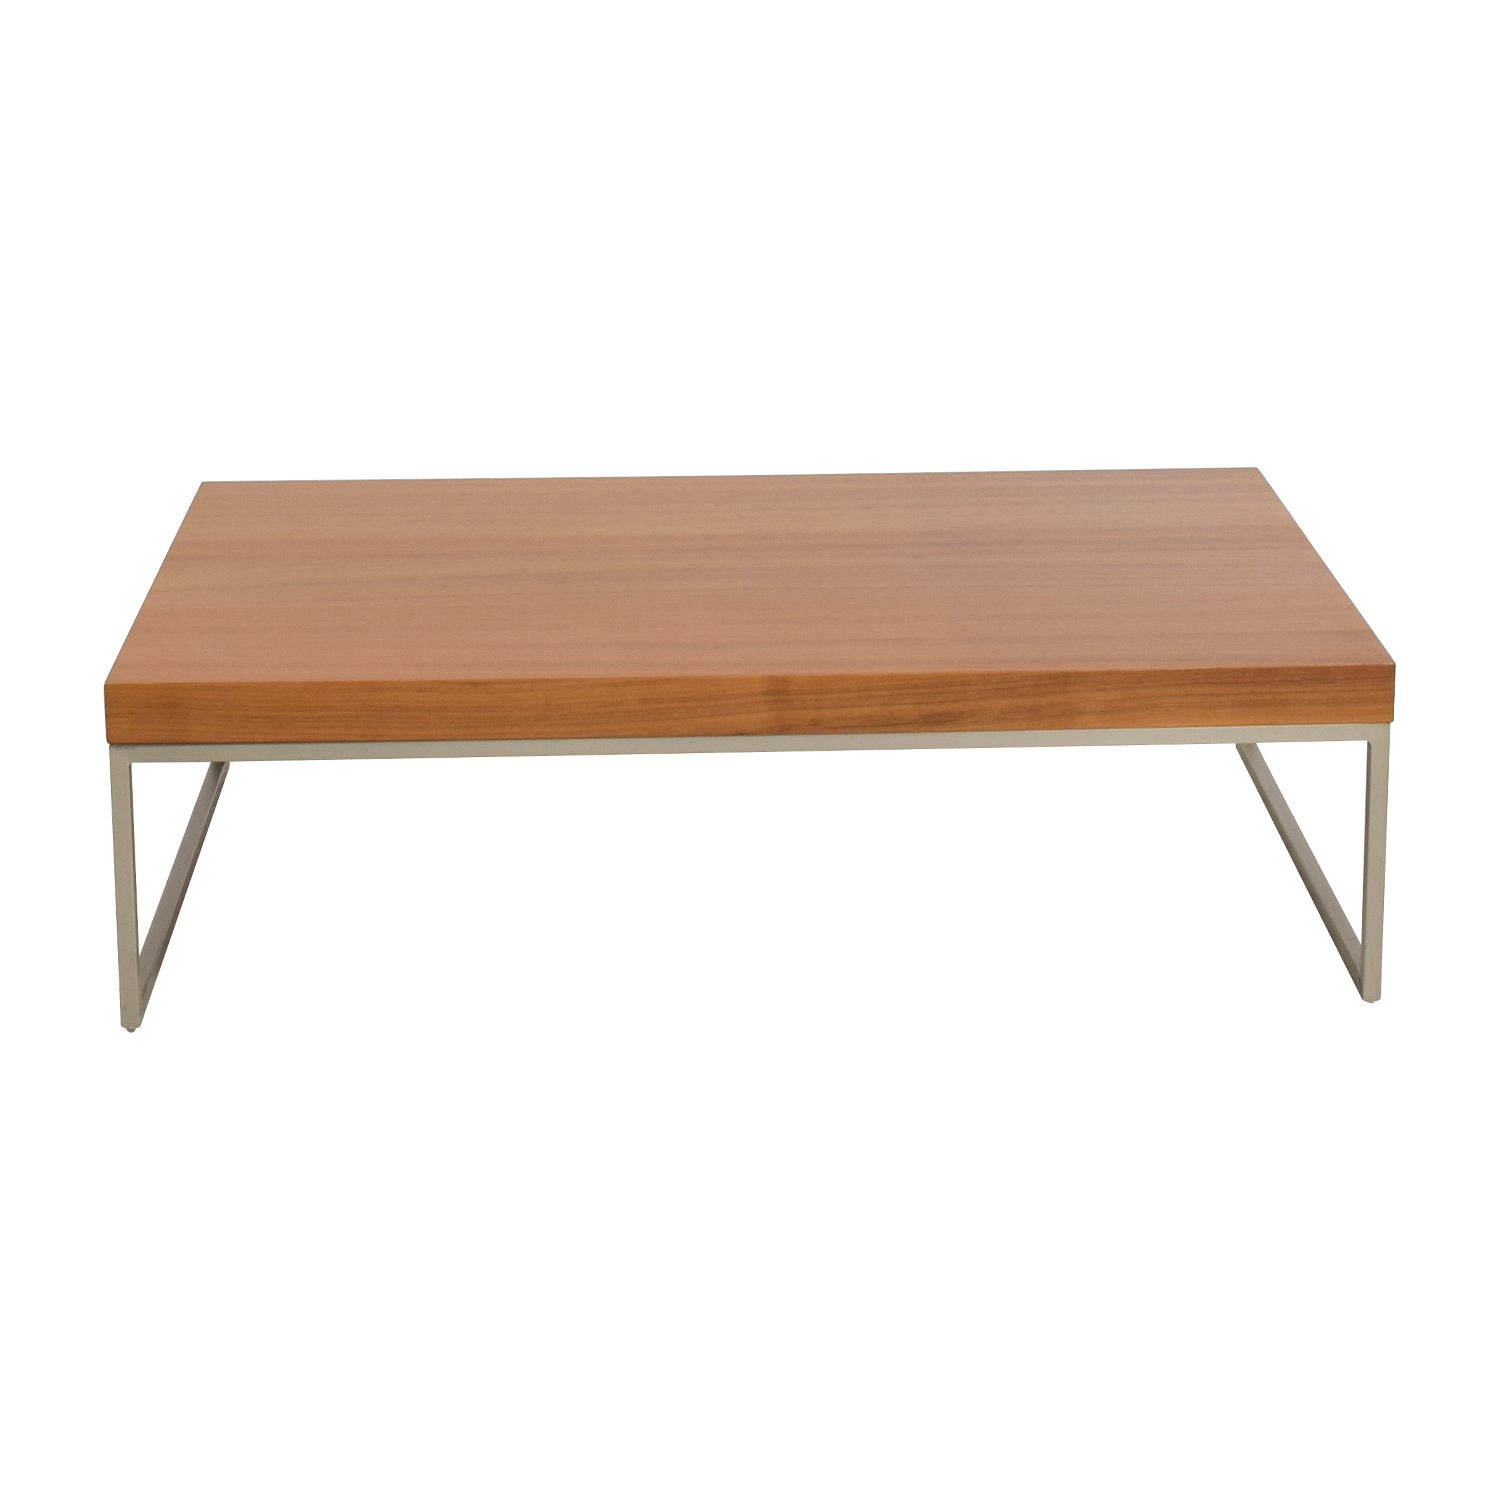 82% OFF - BoConcept BoConcept Lugomatte Oak Veneer Coffee Table ...